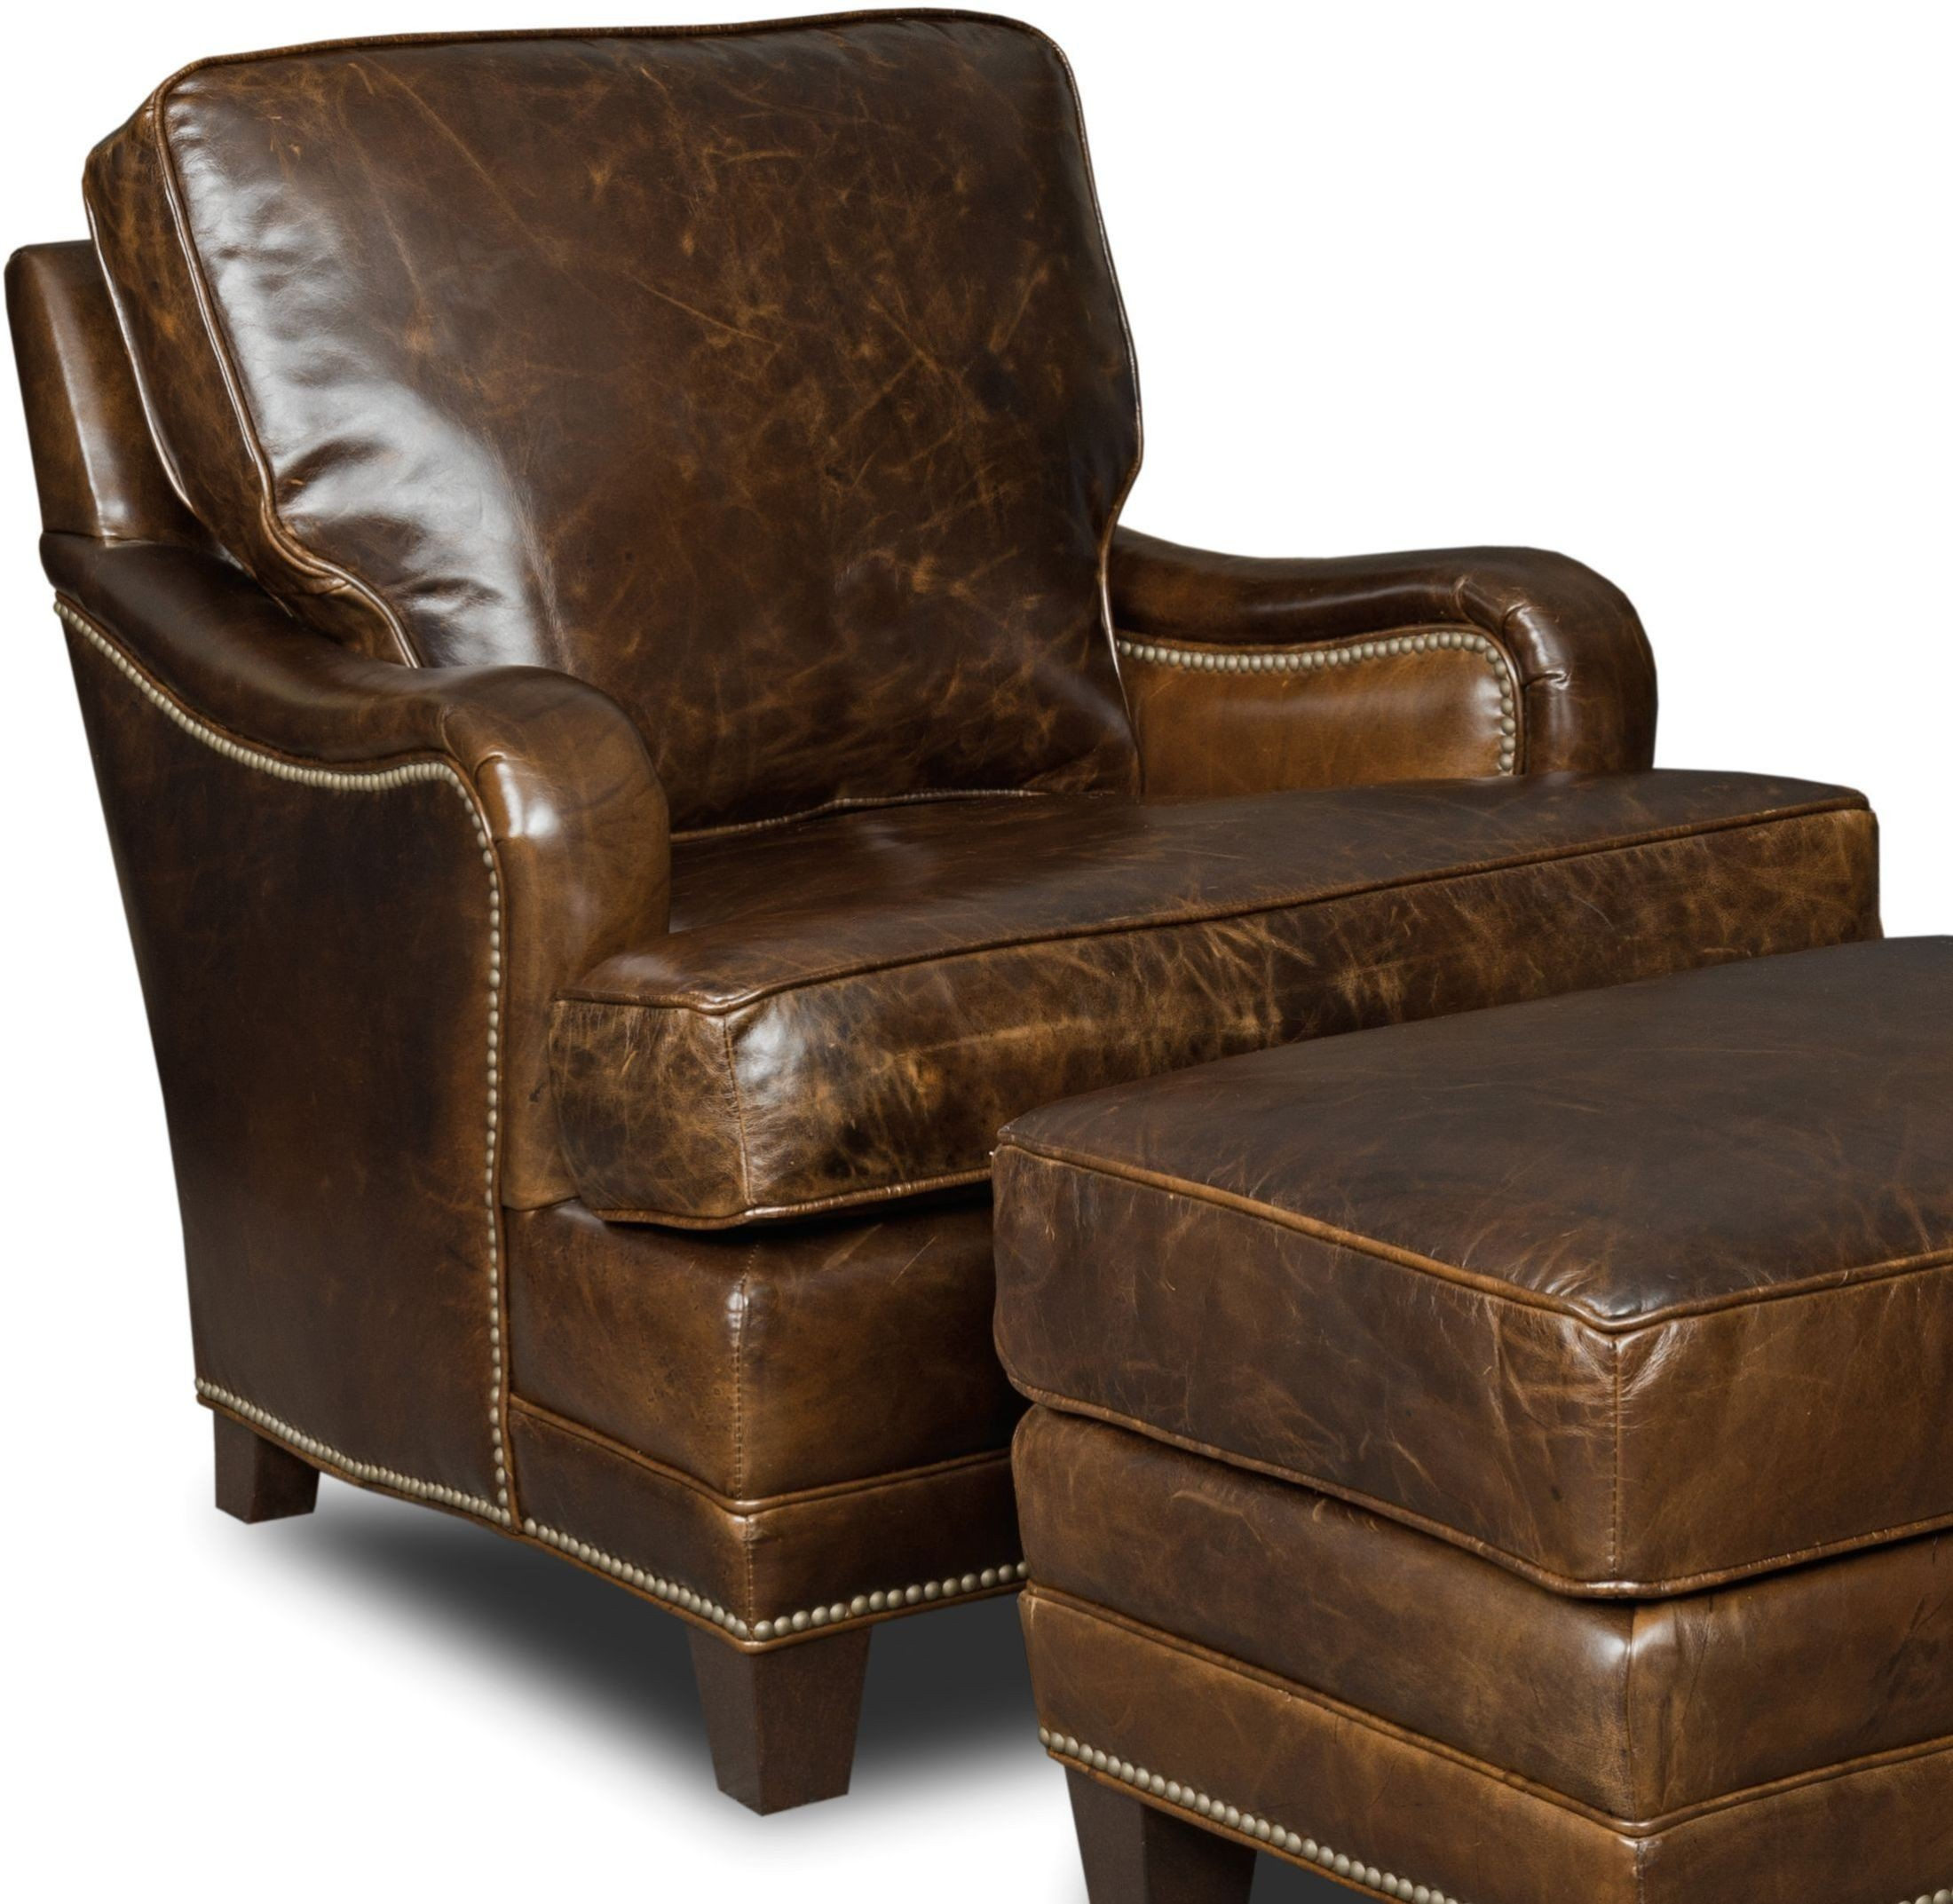 Club Chair Leather Colton Brown Leather Club Chair From Hooker Coleman